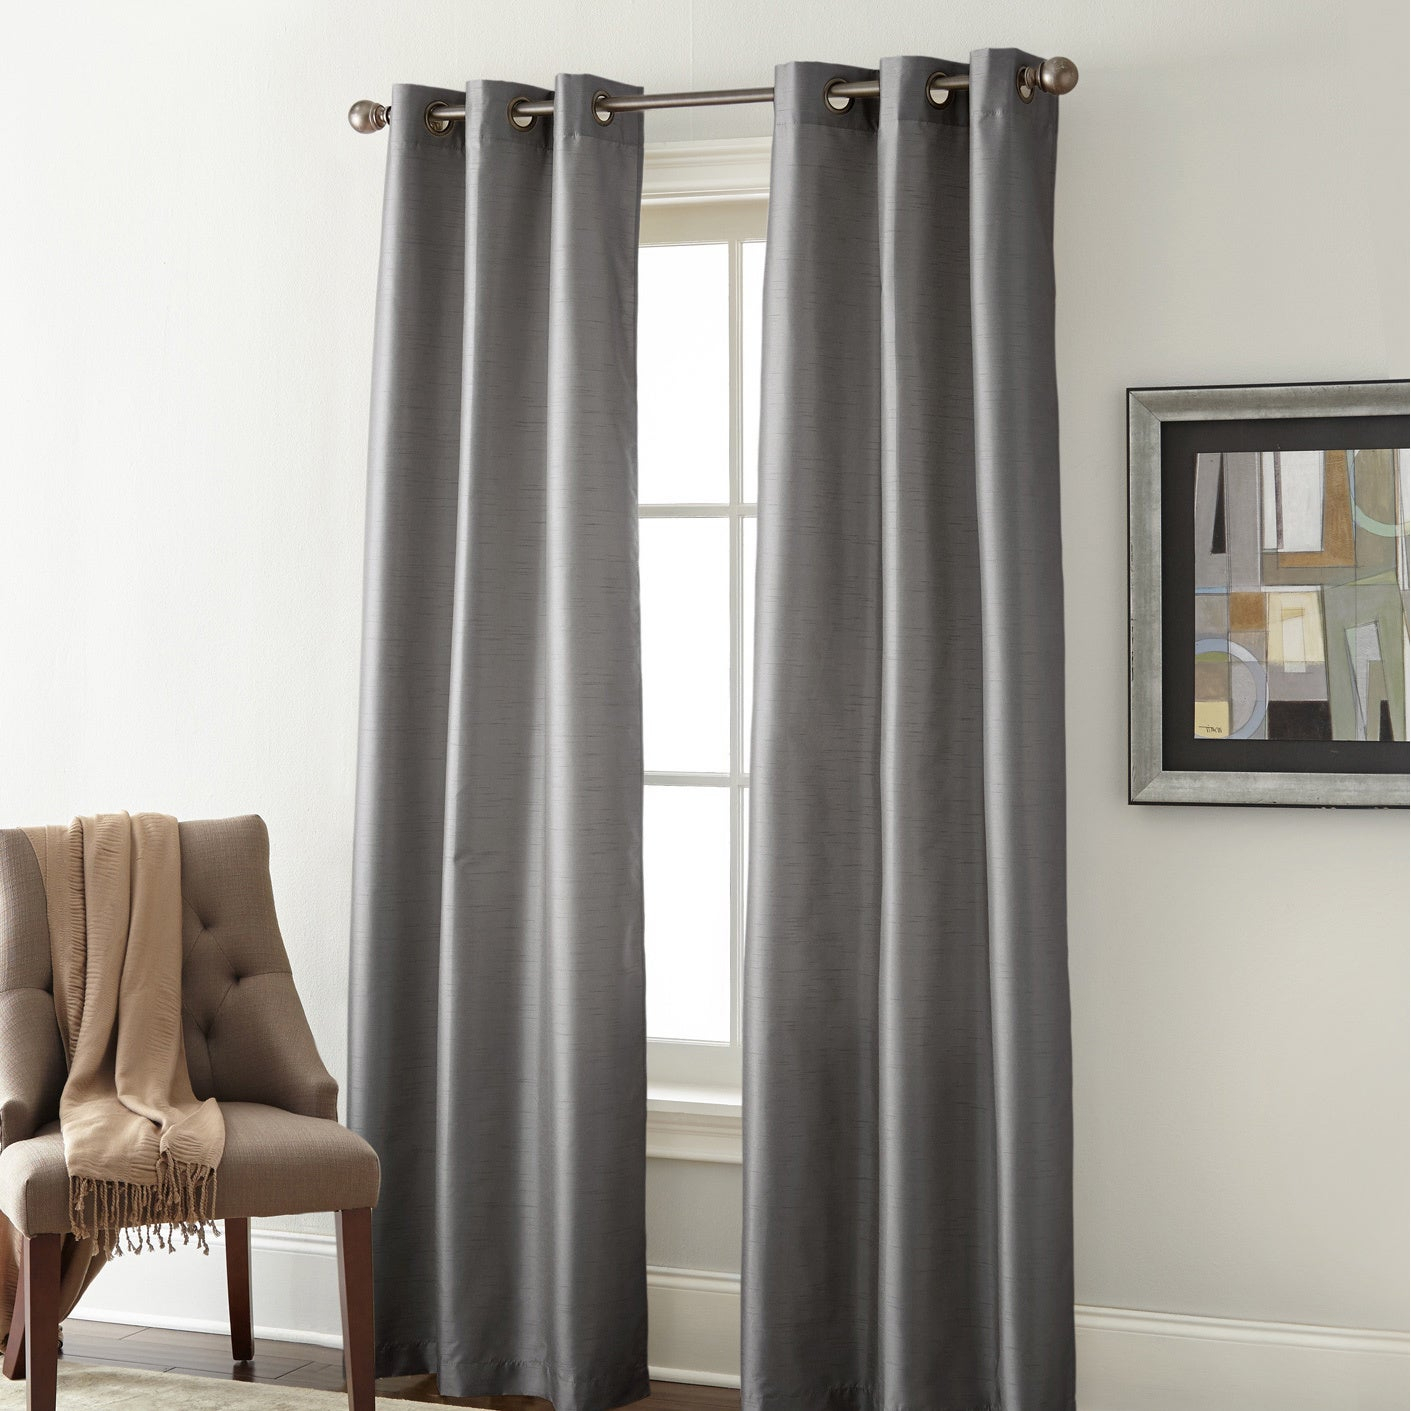 Amrapur Overseas Faux Silk Blackout Curtain Panel Pair In Overseas Faux Silk Blackout Curtain Panel Pairs (View 2 of 20)